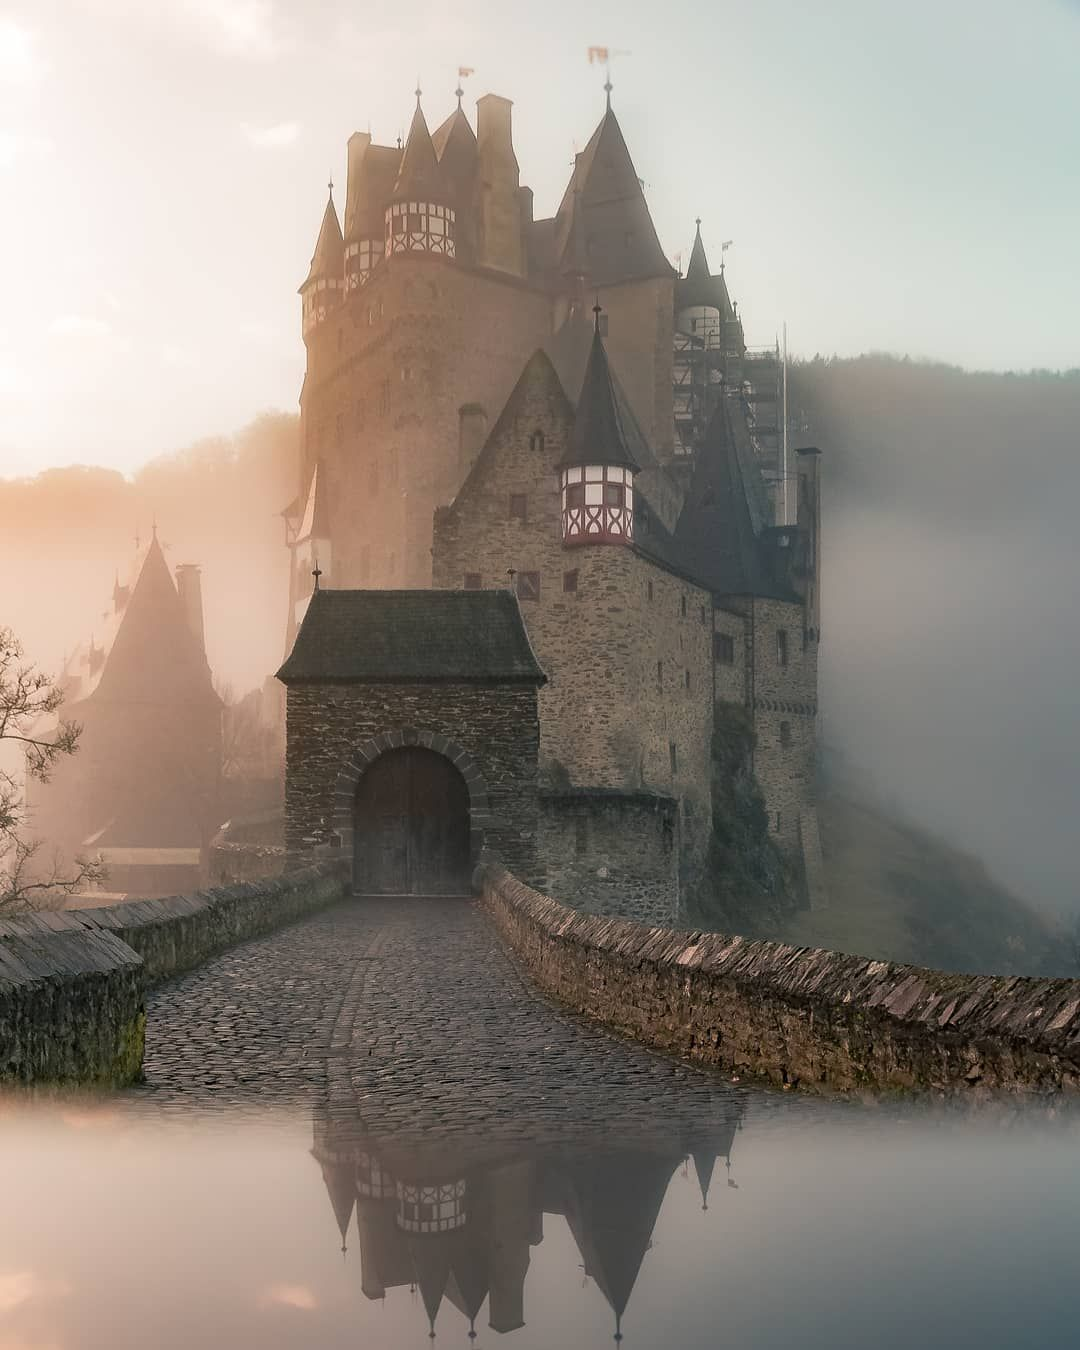 Versaillesadness On Instagram Mysterious Atmosphere At The Fantastic Burg Eltz In Germany Definitely Of The Most Landschaftsfotografie Reisen Reiseziele